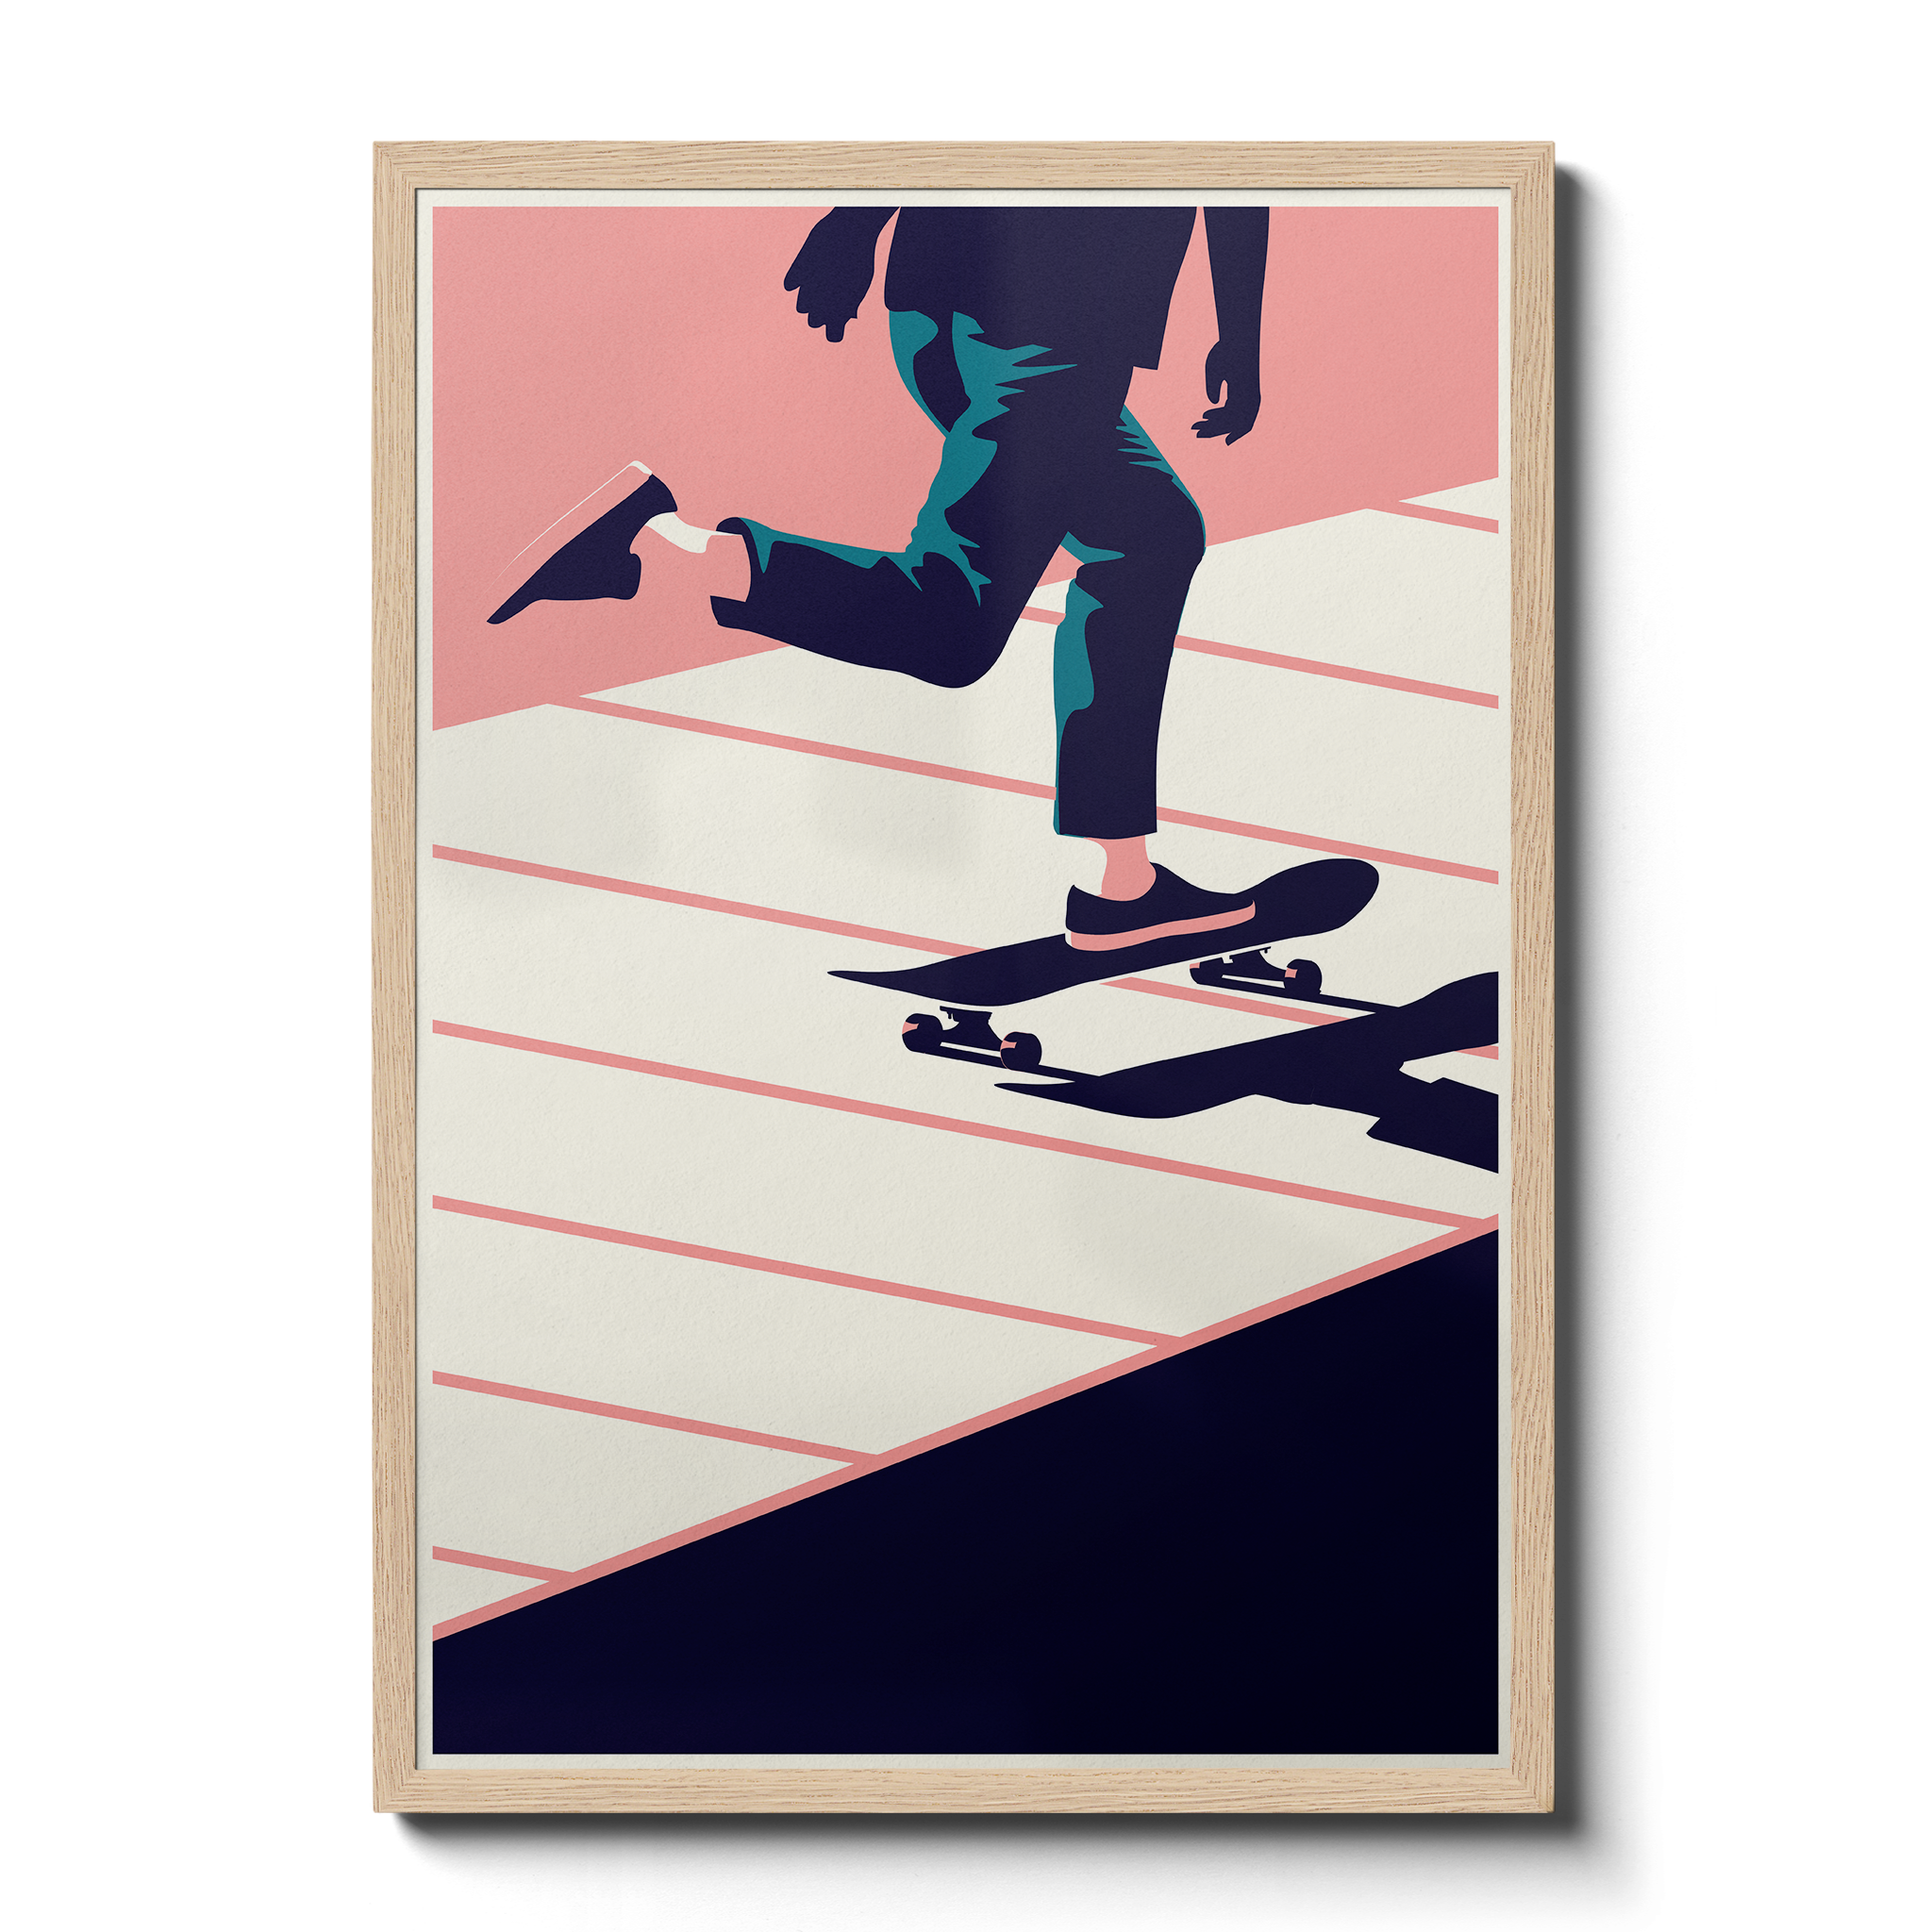 Summertime Travel Skate - Giclée Print